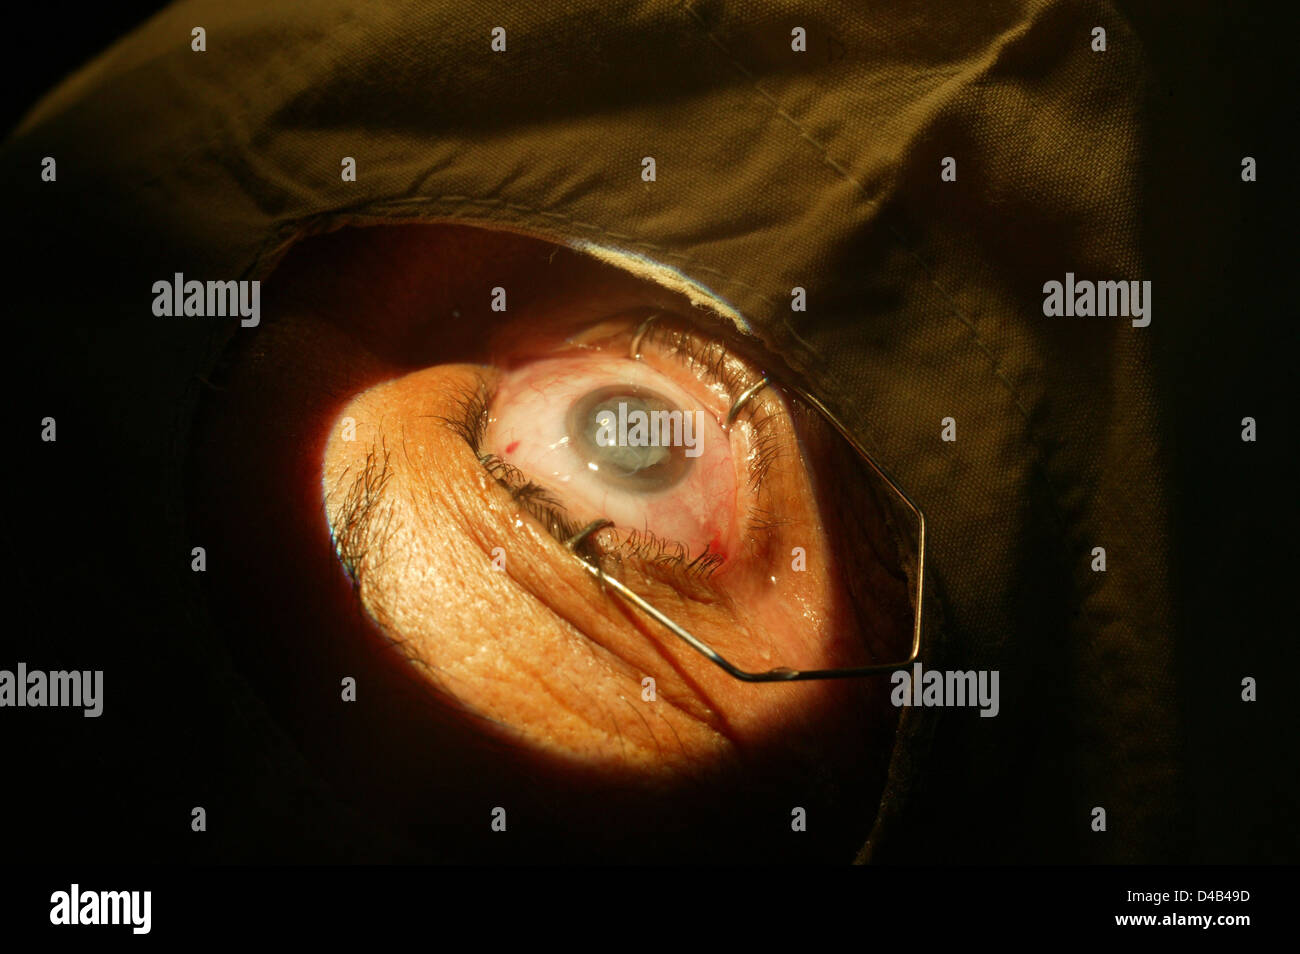 Metal retractors holding patients eyelids open during a cataract operation - Stock Image